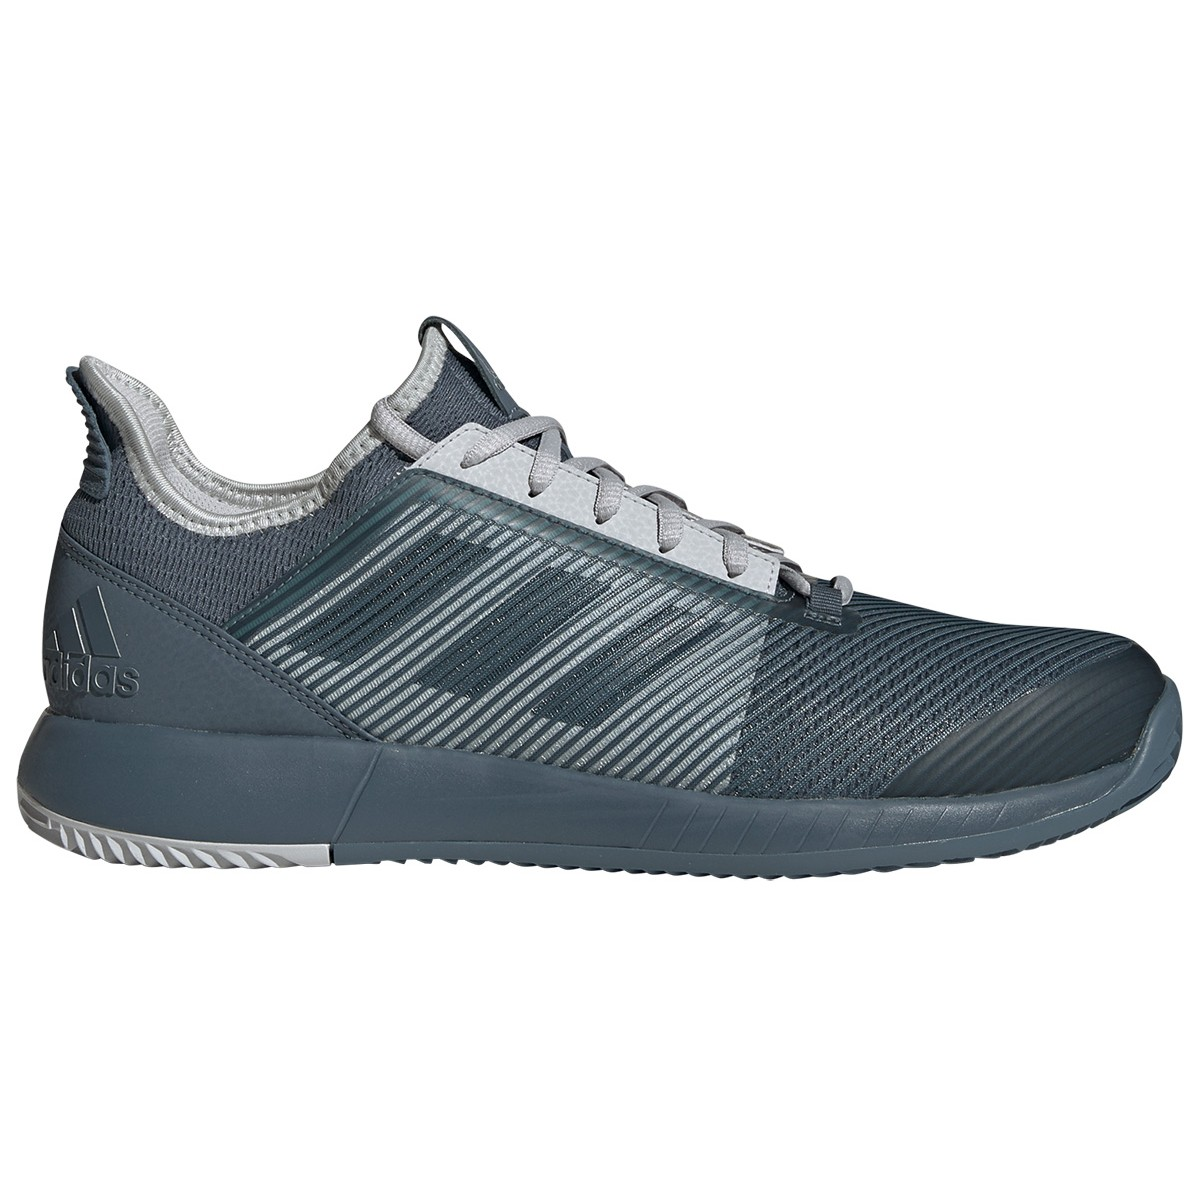 attractive price brand new good selling CHAUSSURES ADIDAS ADIZERO DEFIANCE BOUNCE TERRE BATTUE ...